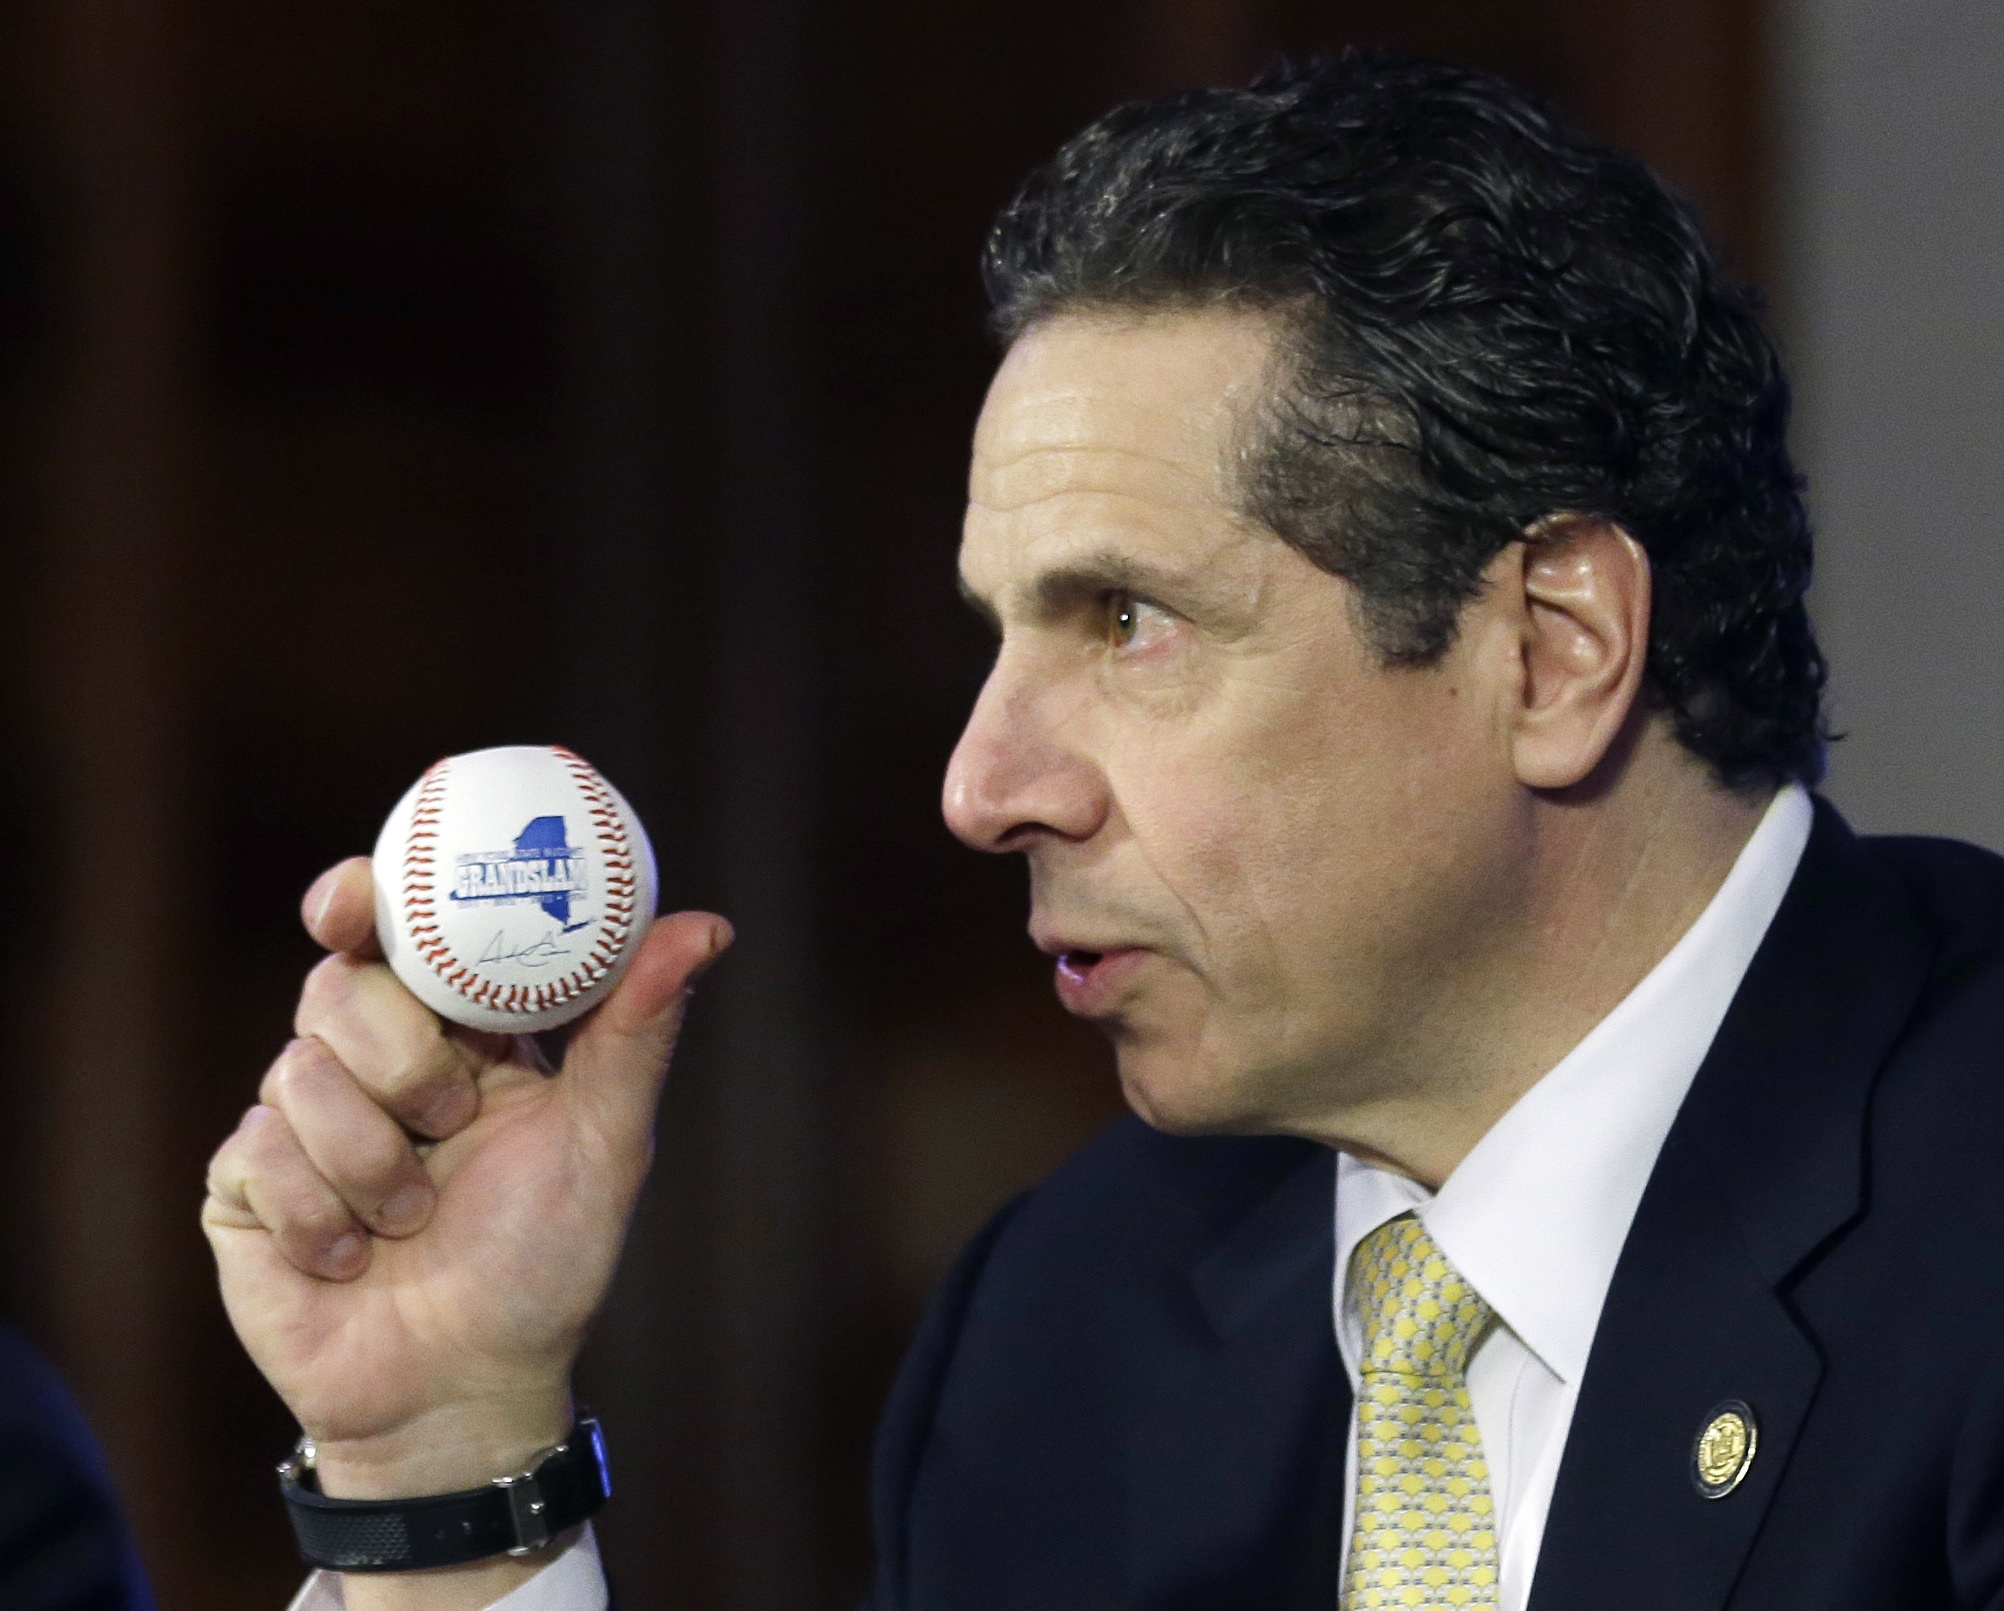 New York Gov. Andrew Cuomo holds a baseball as he speaks during a news conference and budget bill signing ceremony in the Red Room at the Capitol today. The New York Legislature on Monday passed a $140 billion election-year budget that will expand pre-kindergarten statewide and provide tax relief to homeowners and corporations. (AP Photo/Mike Groll)